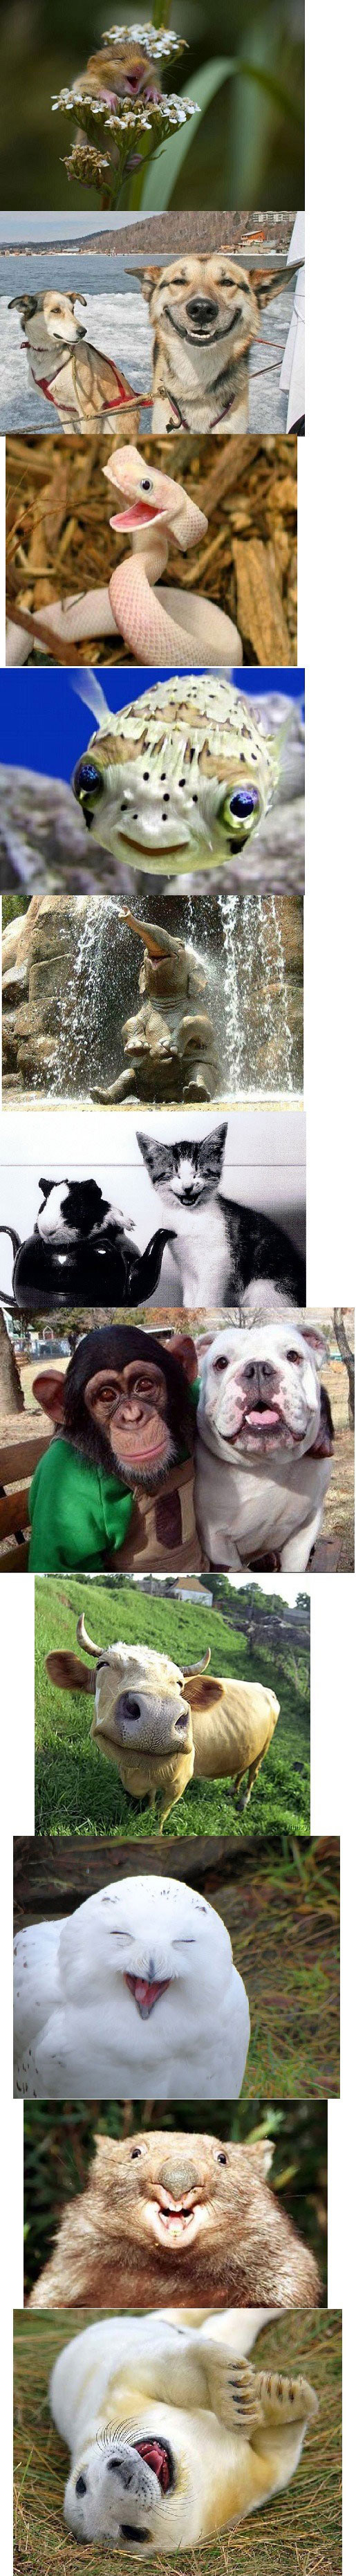 Animales felices